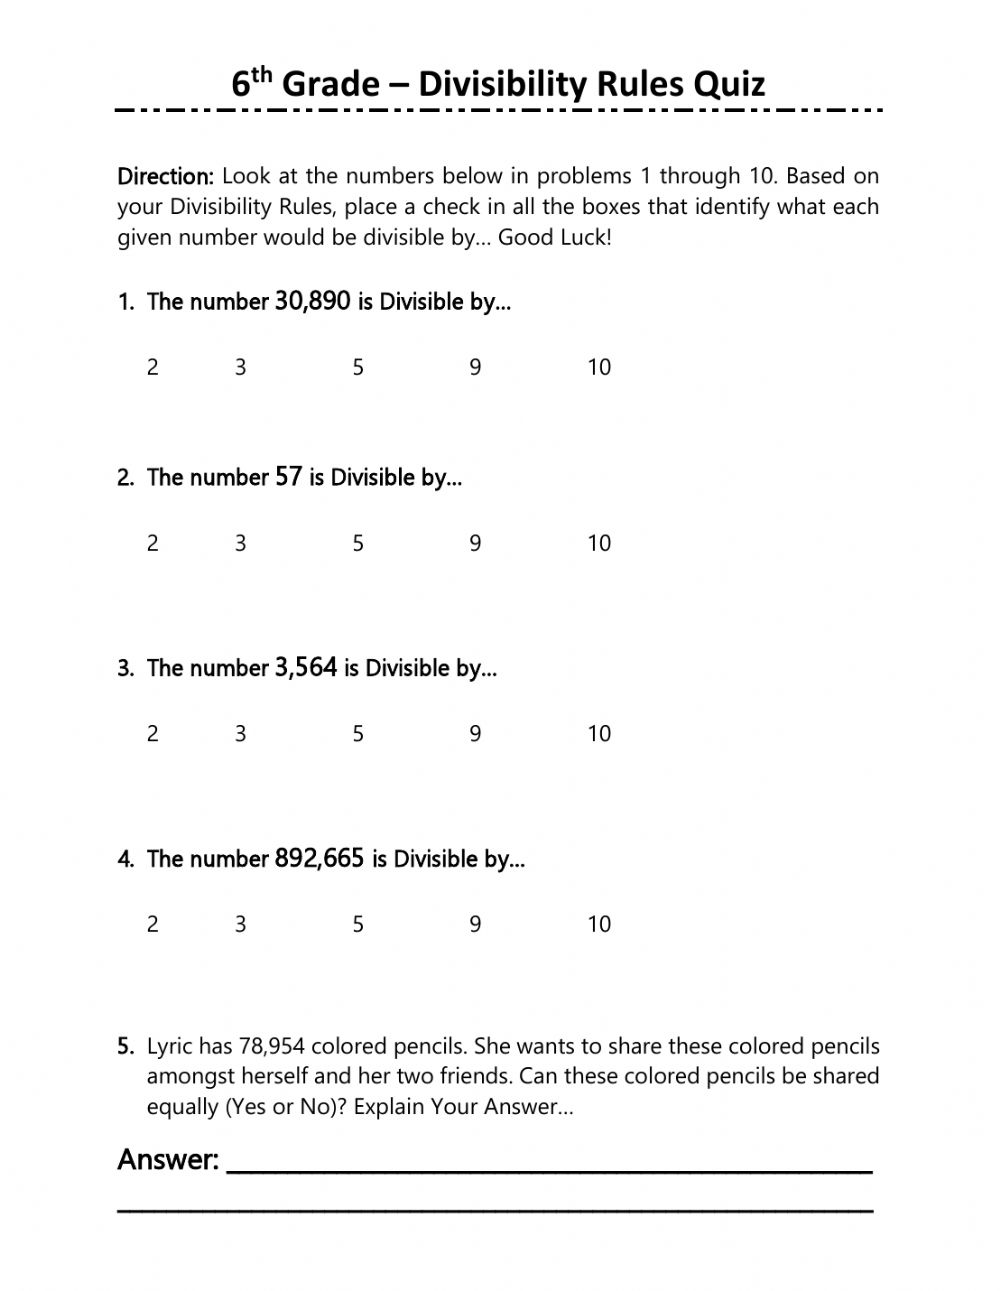 6th Grade Divisibility Rules Quiz Worksheet